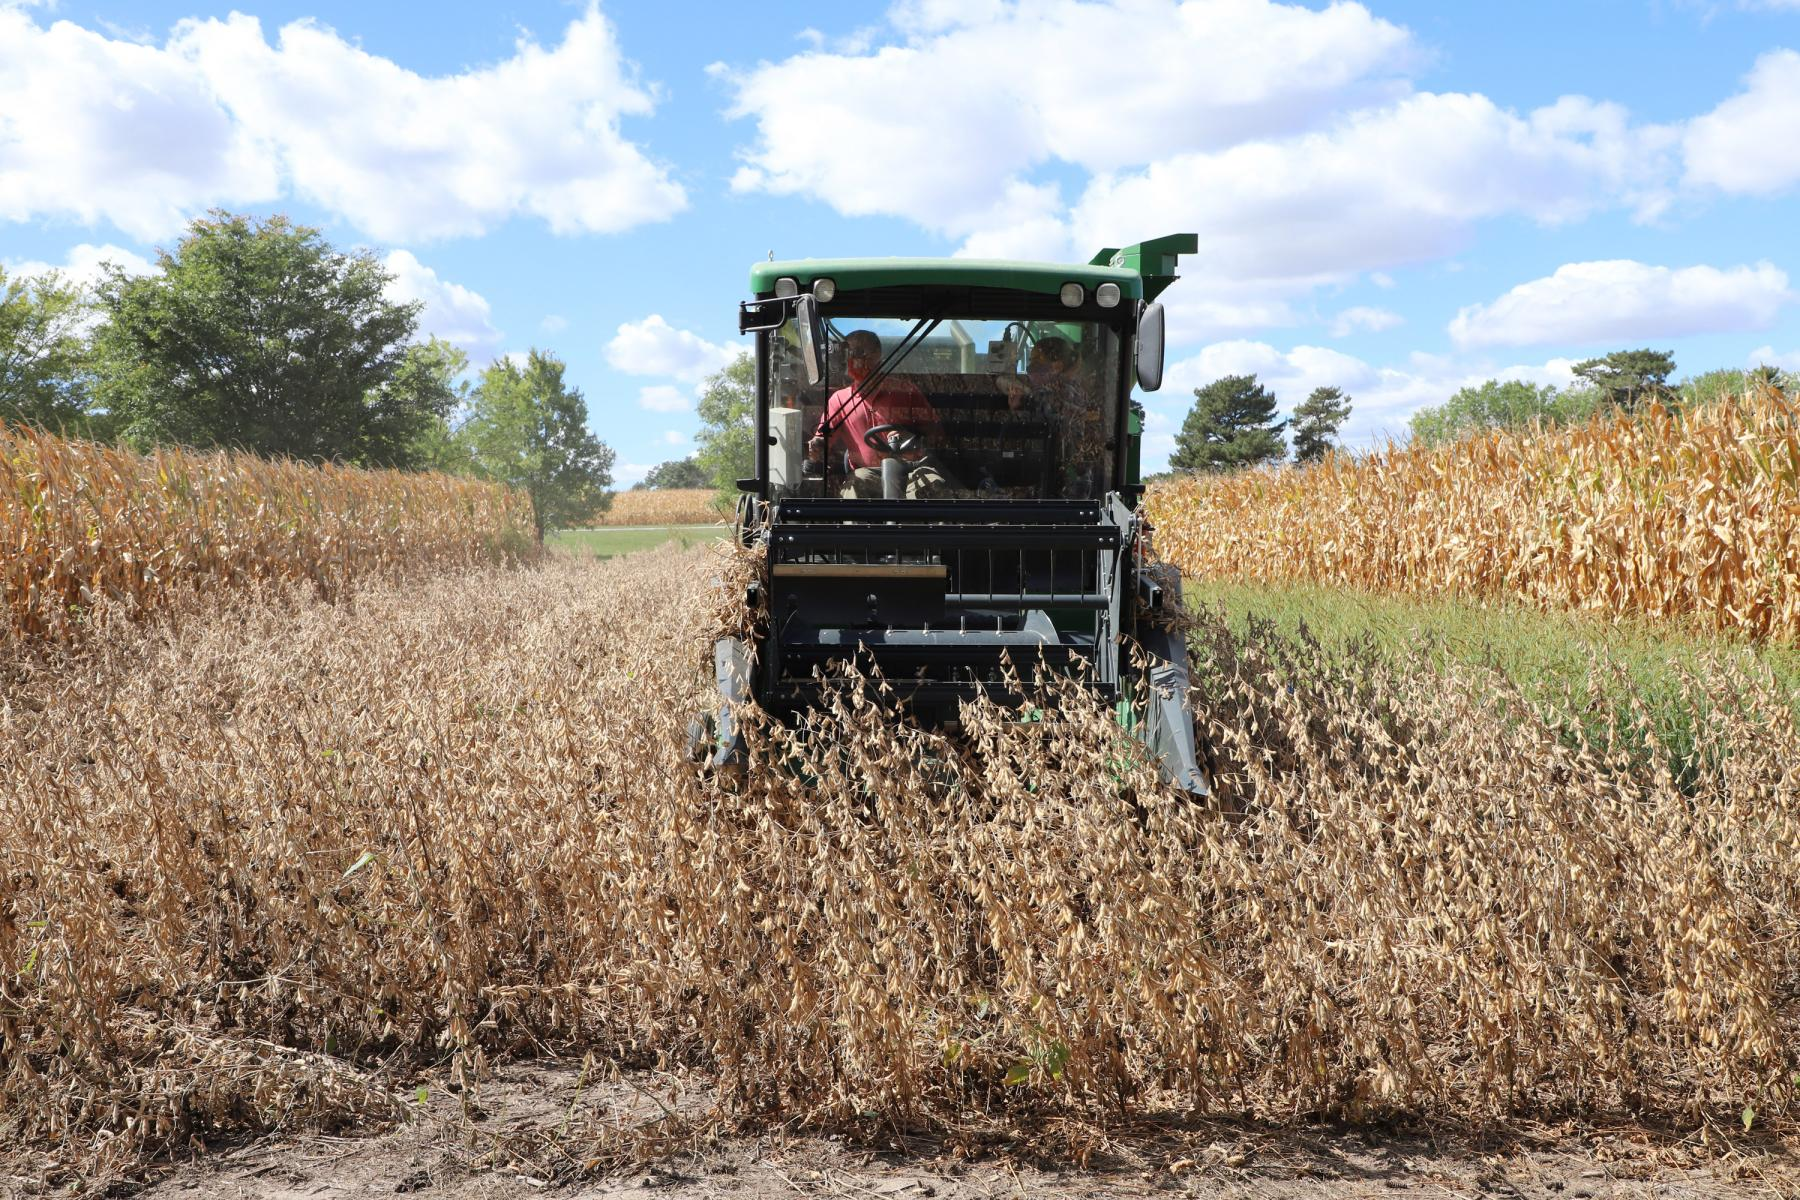 Joshua Reznicek and Alyssa Kuhn harvest soybeans on East Campus